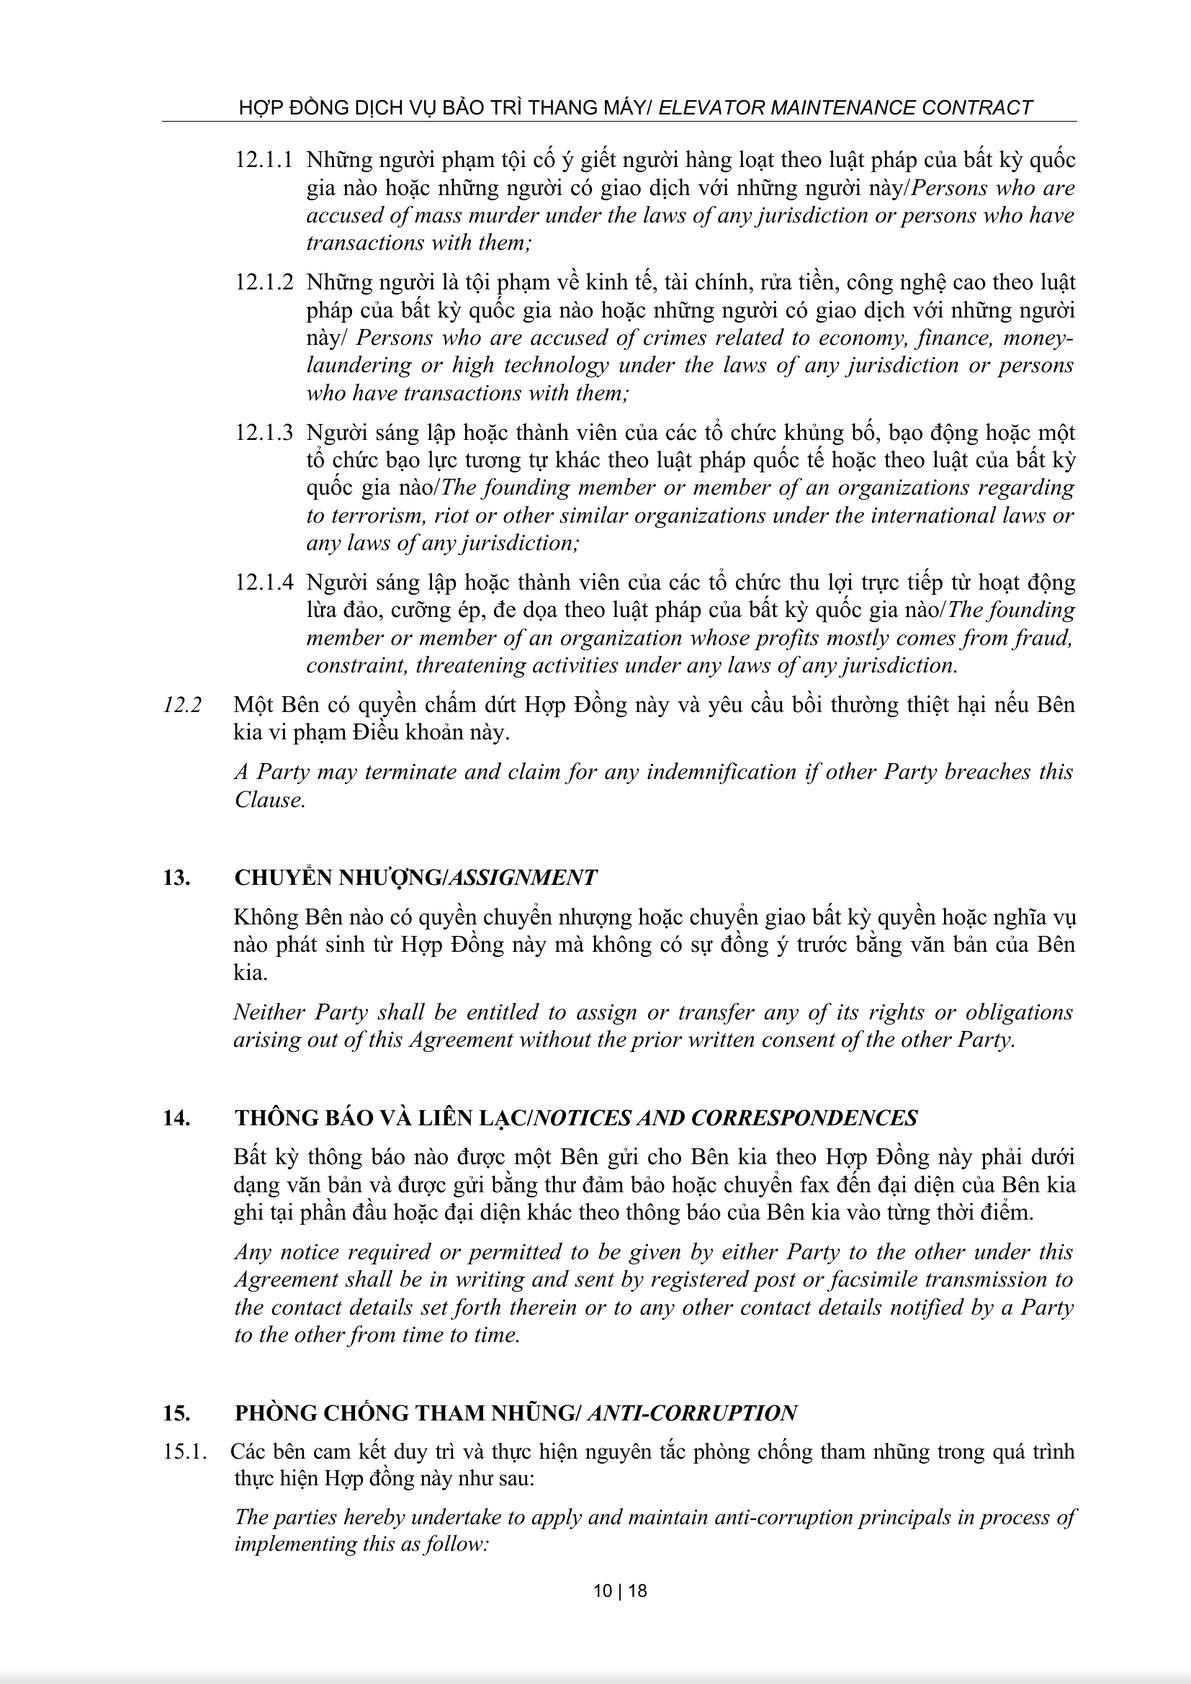 Maintenance Service Agreement-9